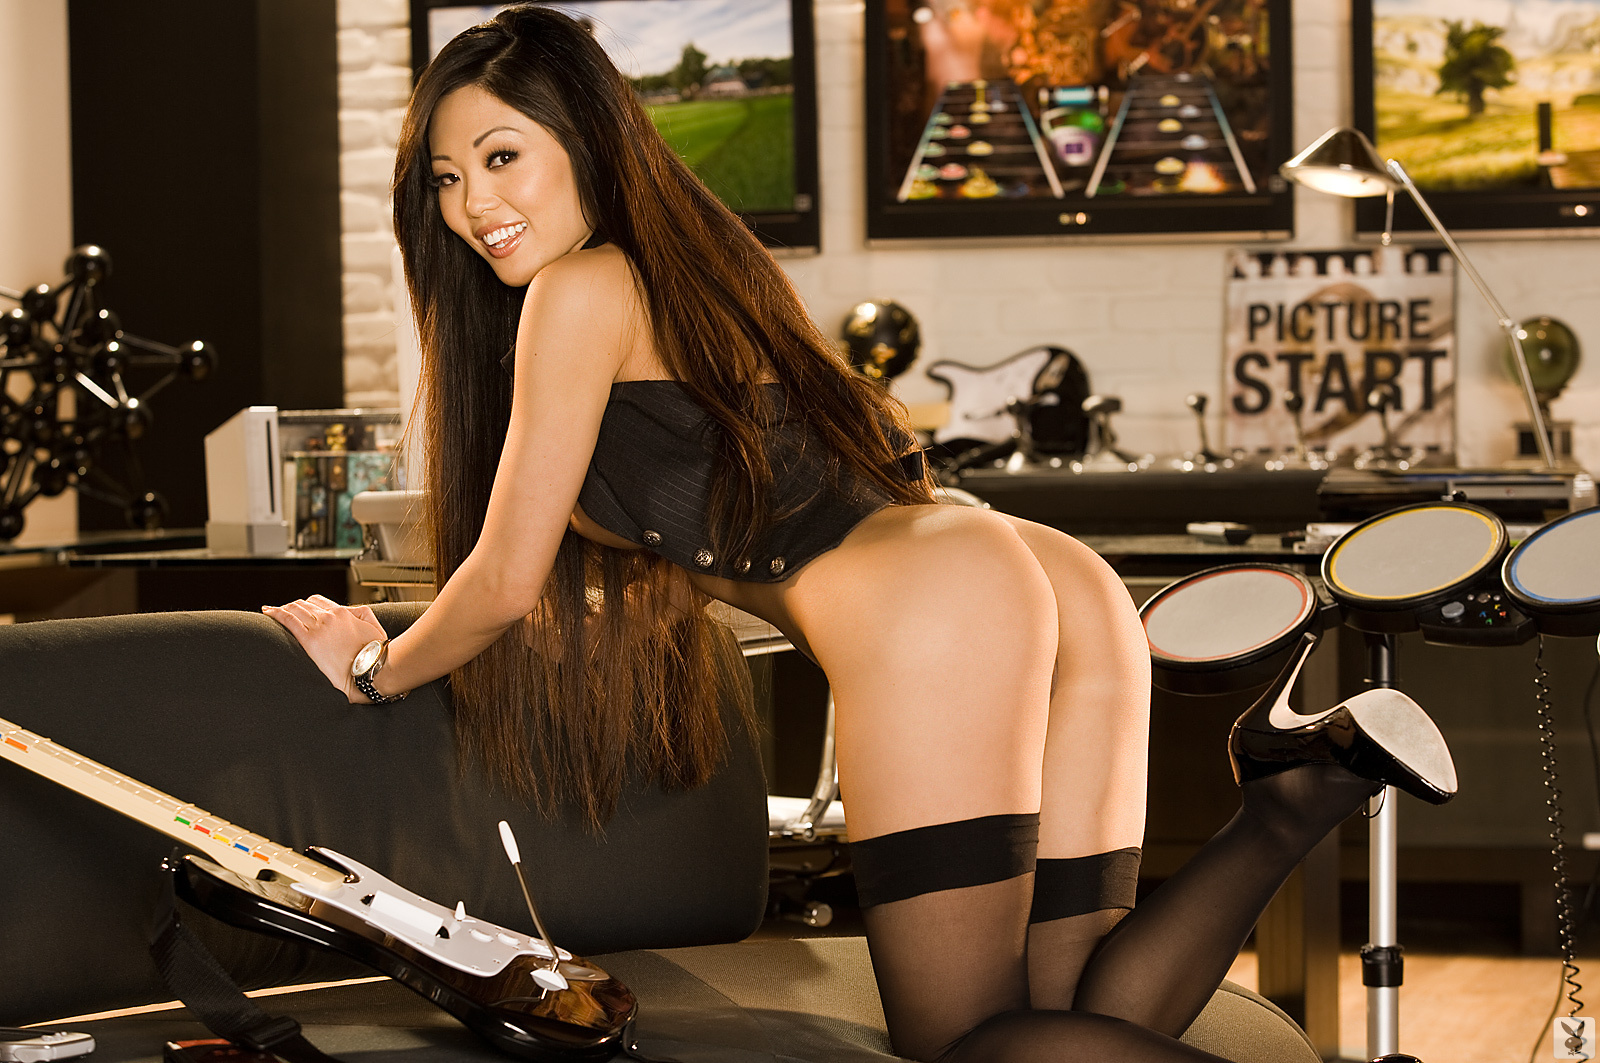 grace-kim-guitar-stockings-naked-asian-playboy-21